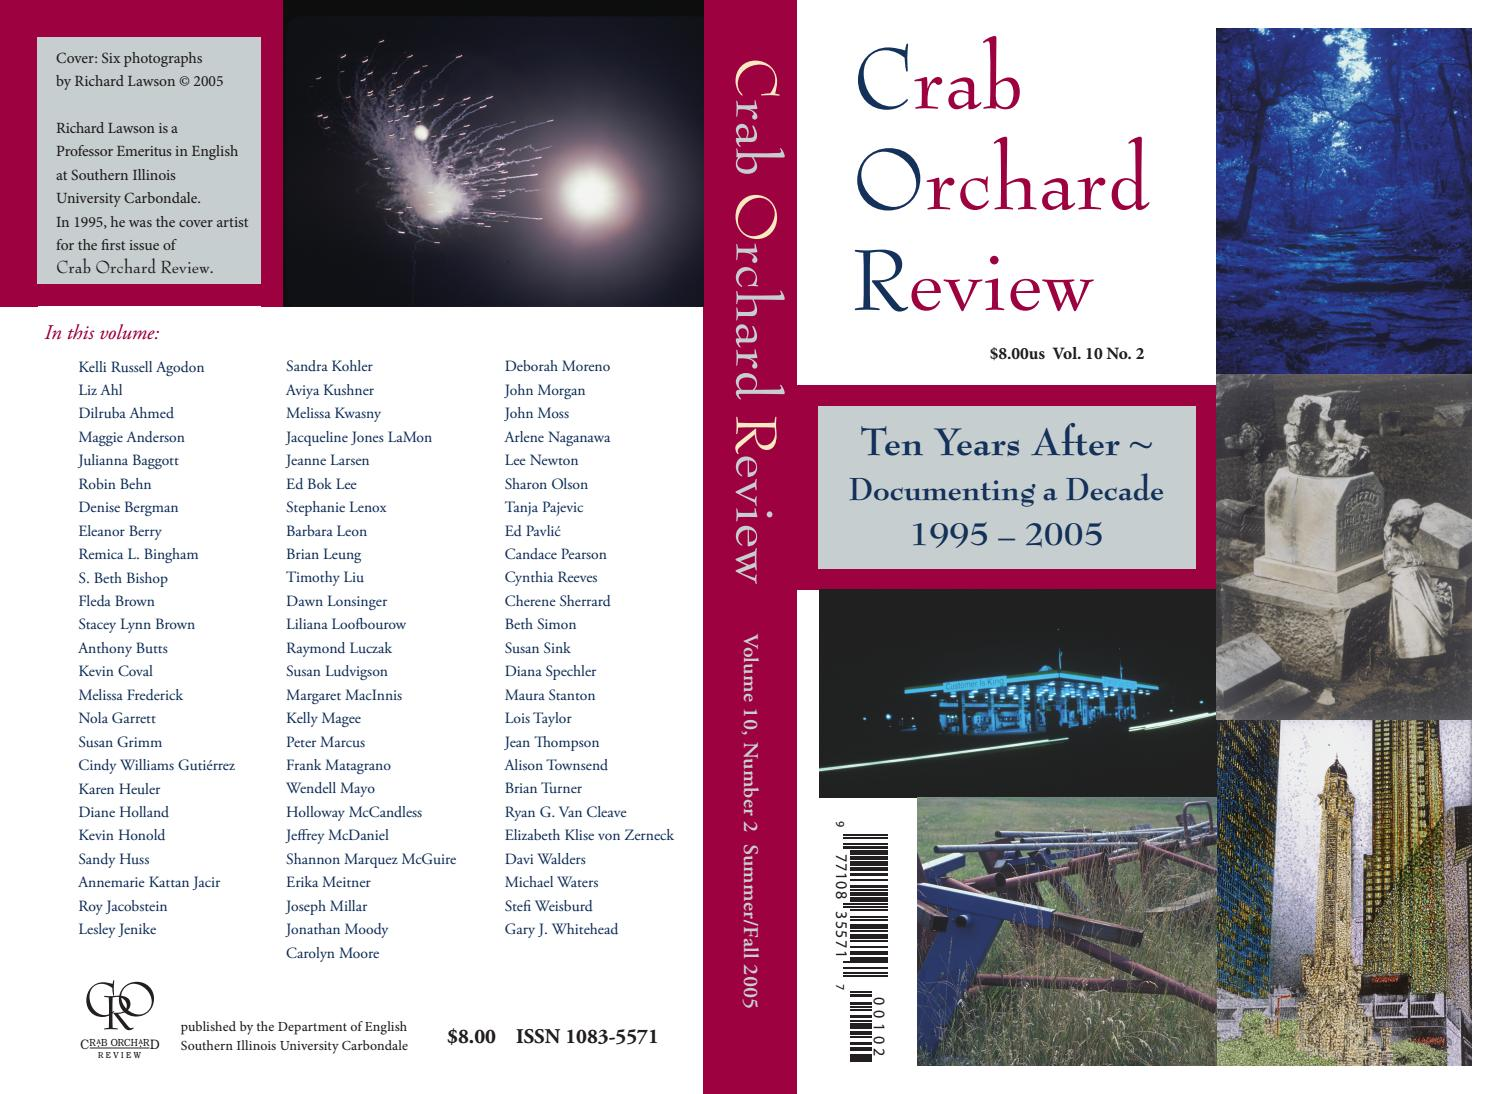 Crab Orchard Review Vol 10 No 2 S/F 2005 by Crab Orchard